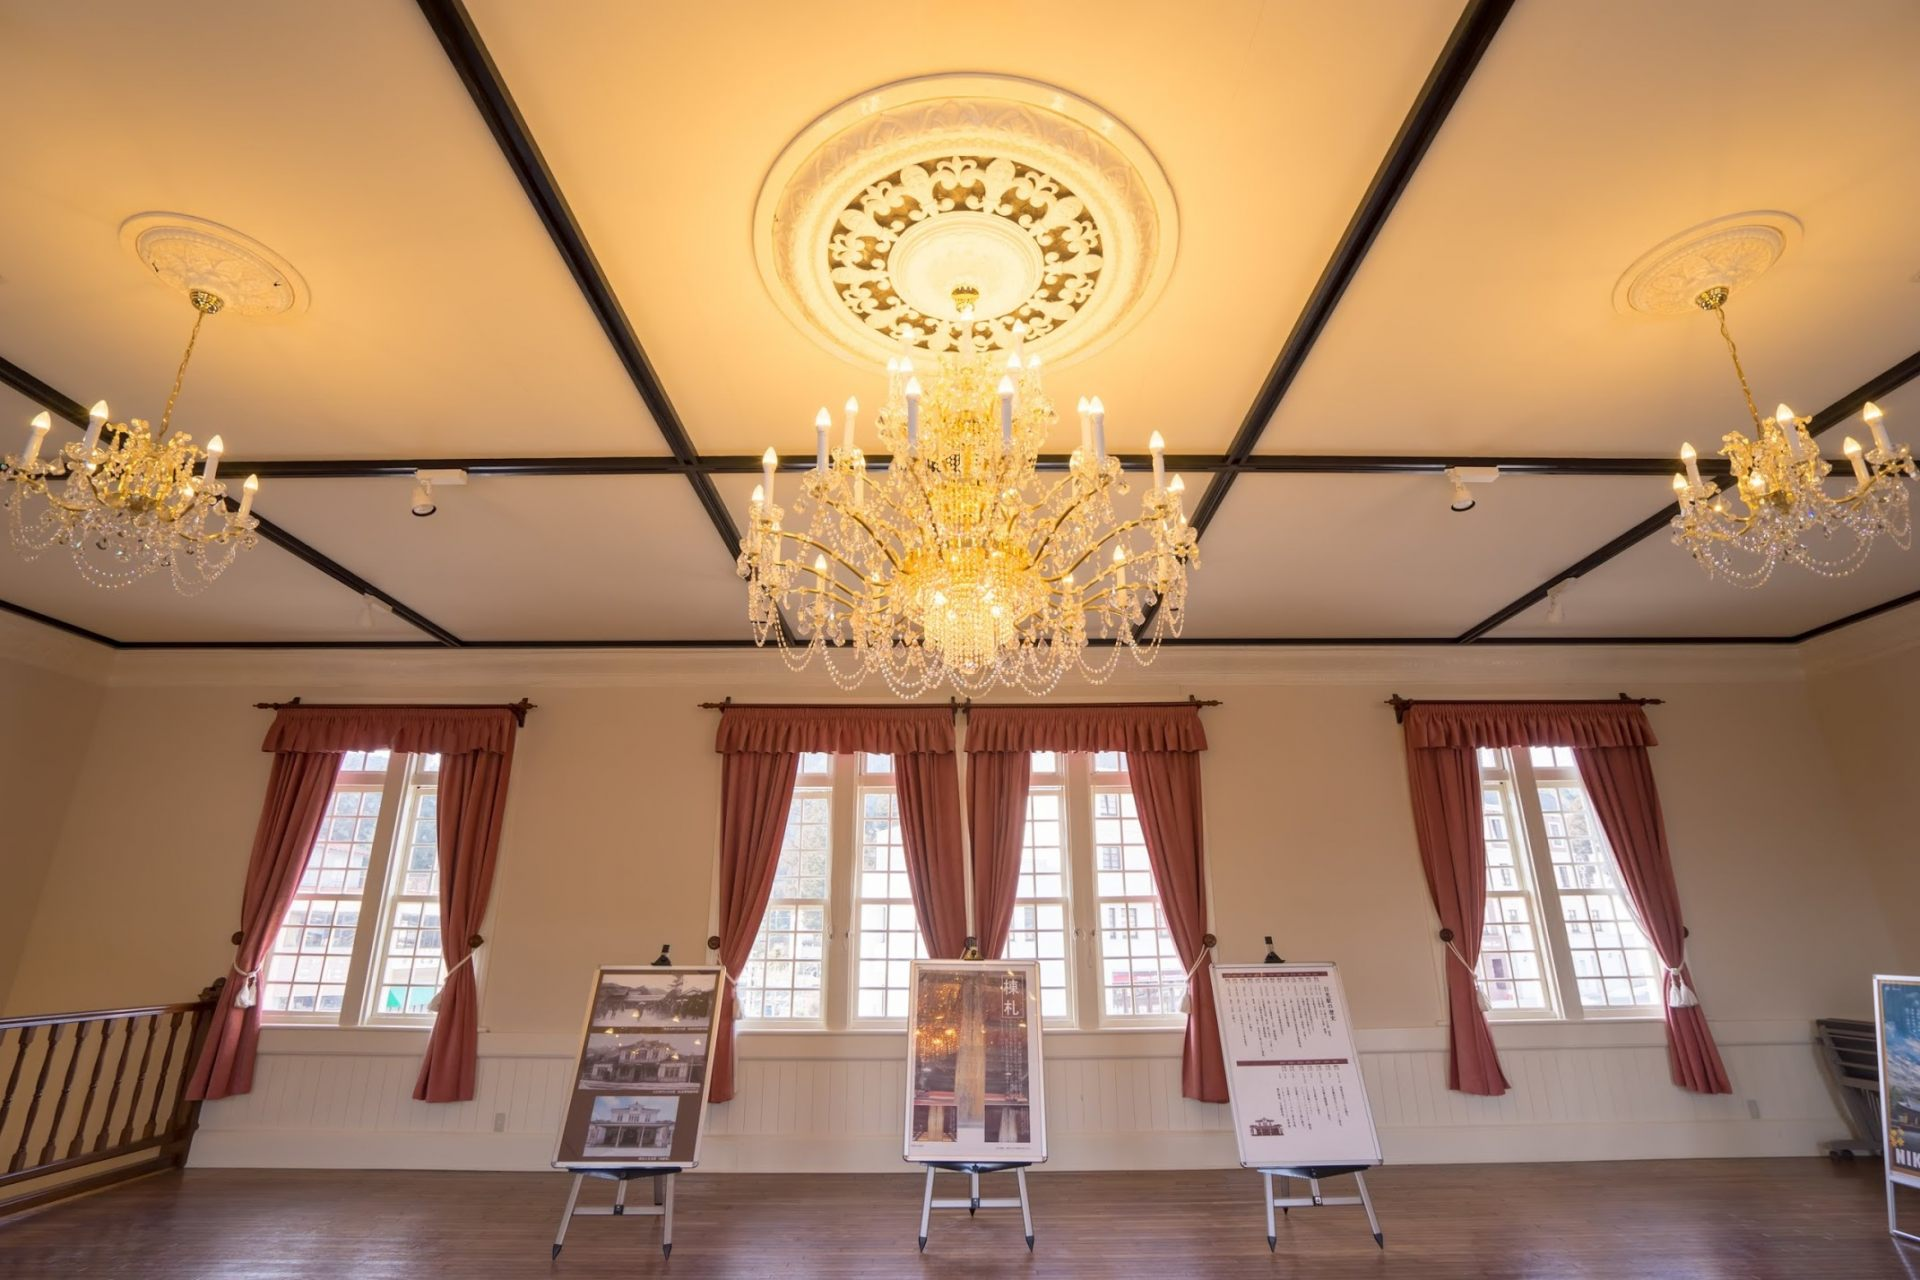 Luxurious chandeliers